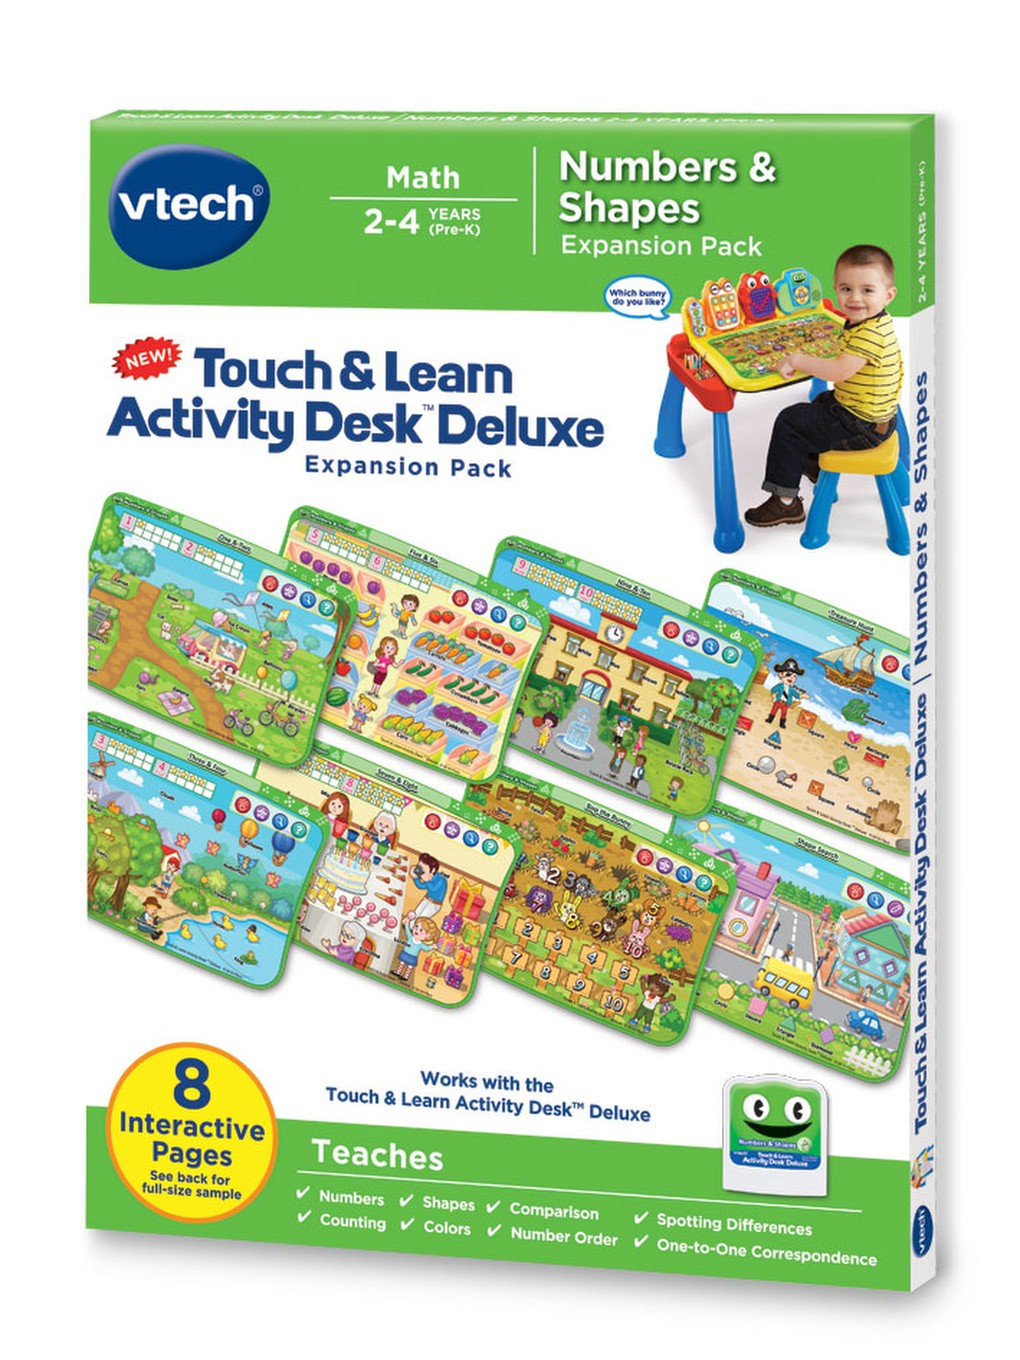 Touch & Learn Activity Desk™ Deluxe │ Numbers & Shapes │ VTech®